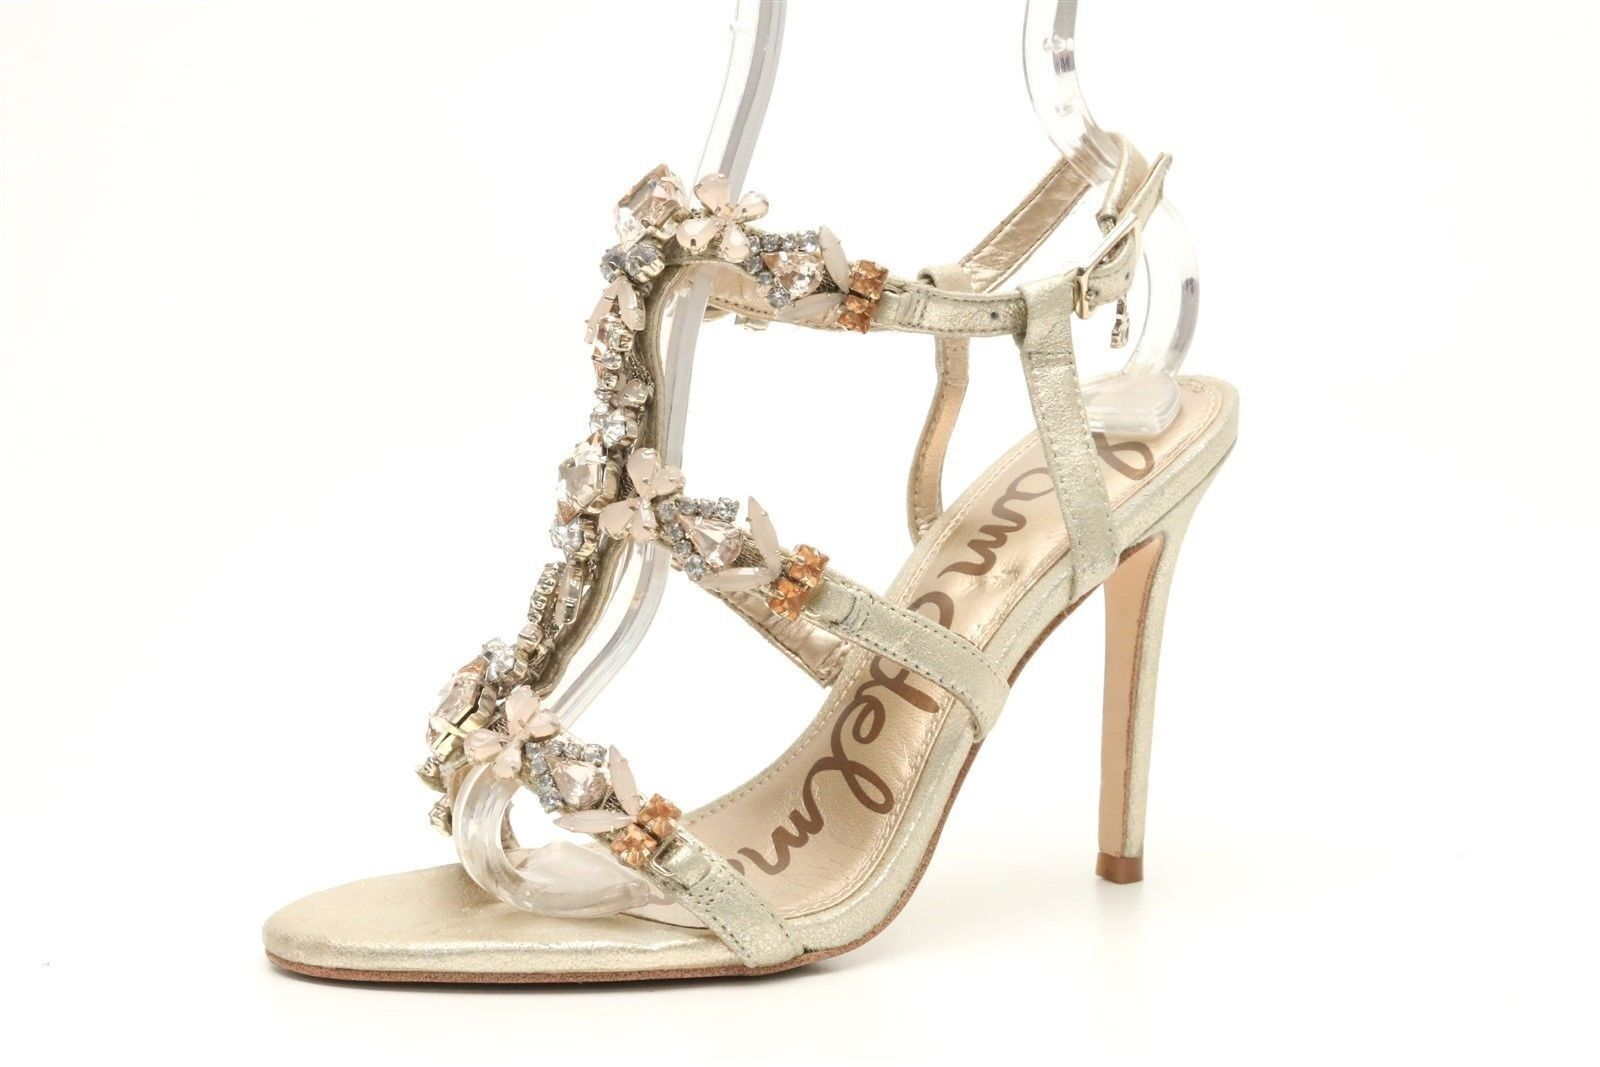 Damenschuhe SAM EDELMAN gold jeweled strappy ankle strap Sandale sz. 6 M 160